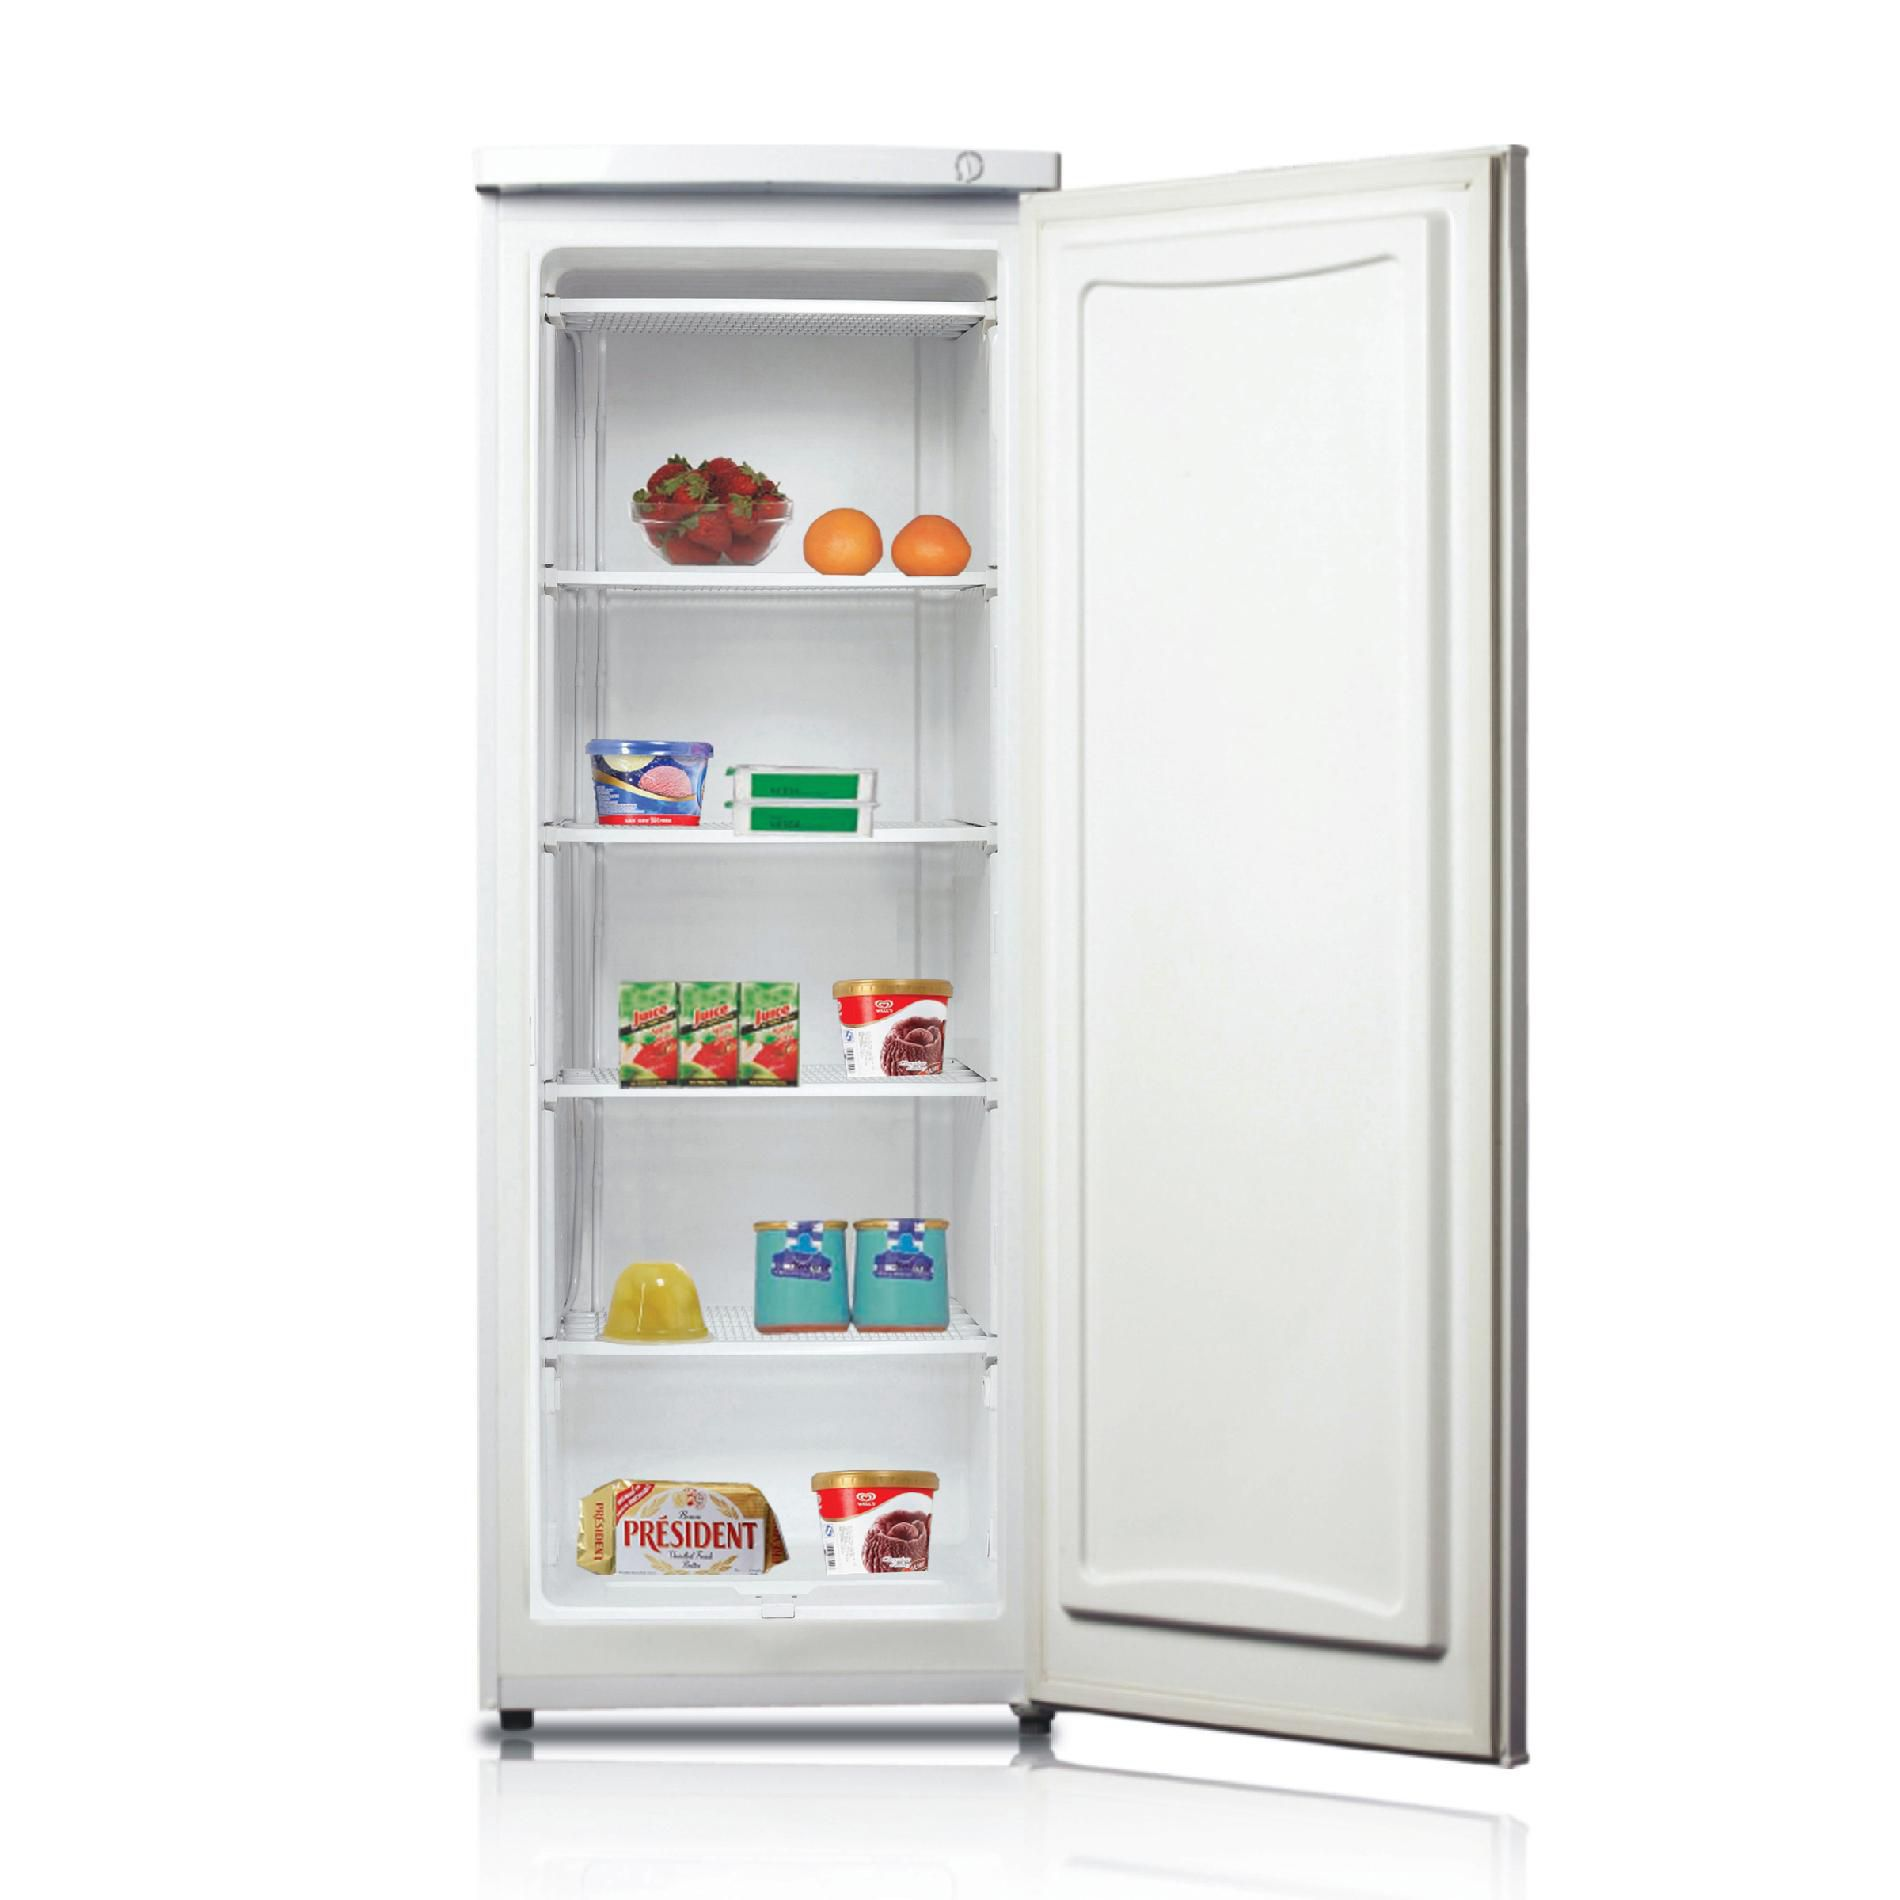 Kenmore 6.5 cu. ft. Upright Freezer